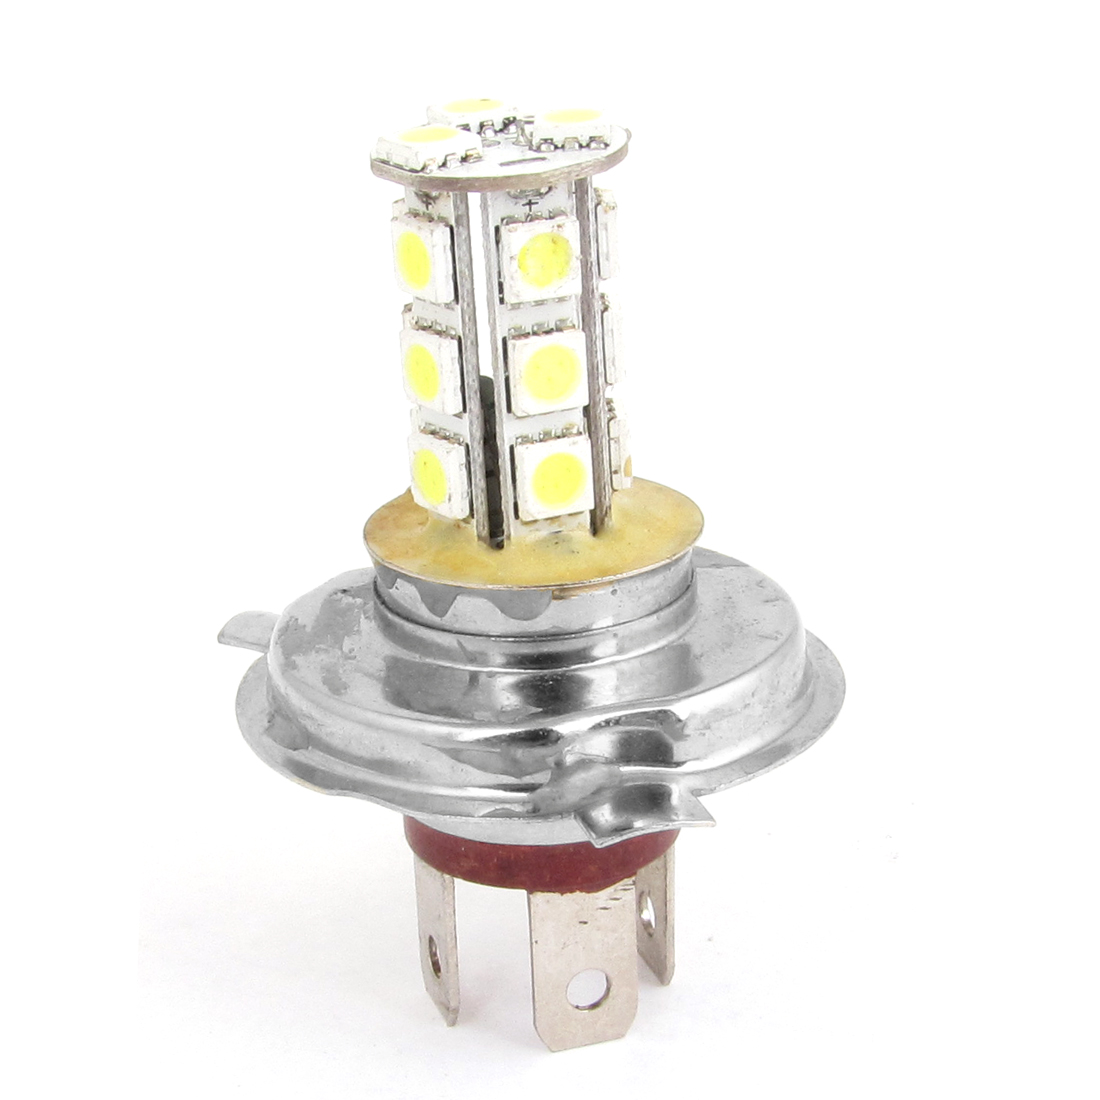 H4 18 5050 SMD LED White Fog Light Bulb Replacement for Car Auto